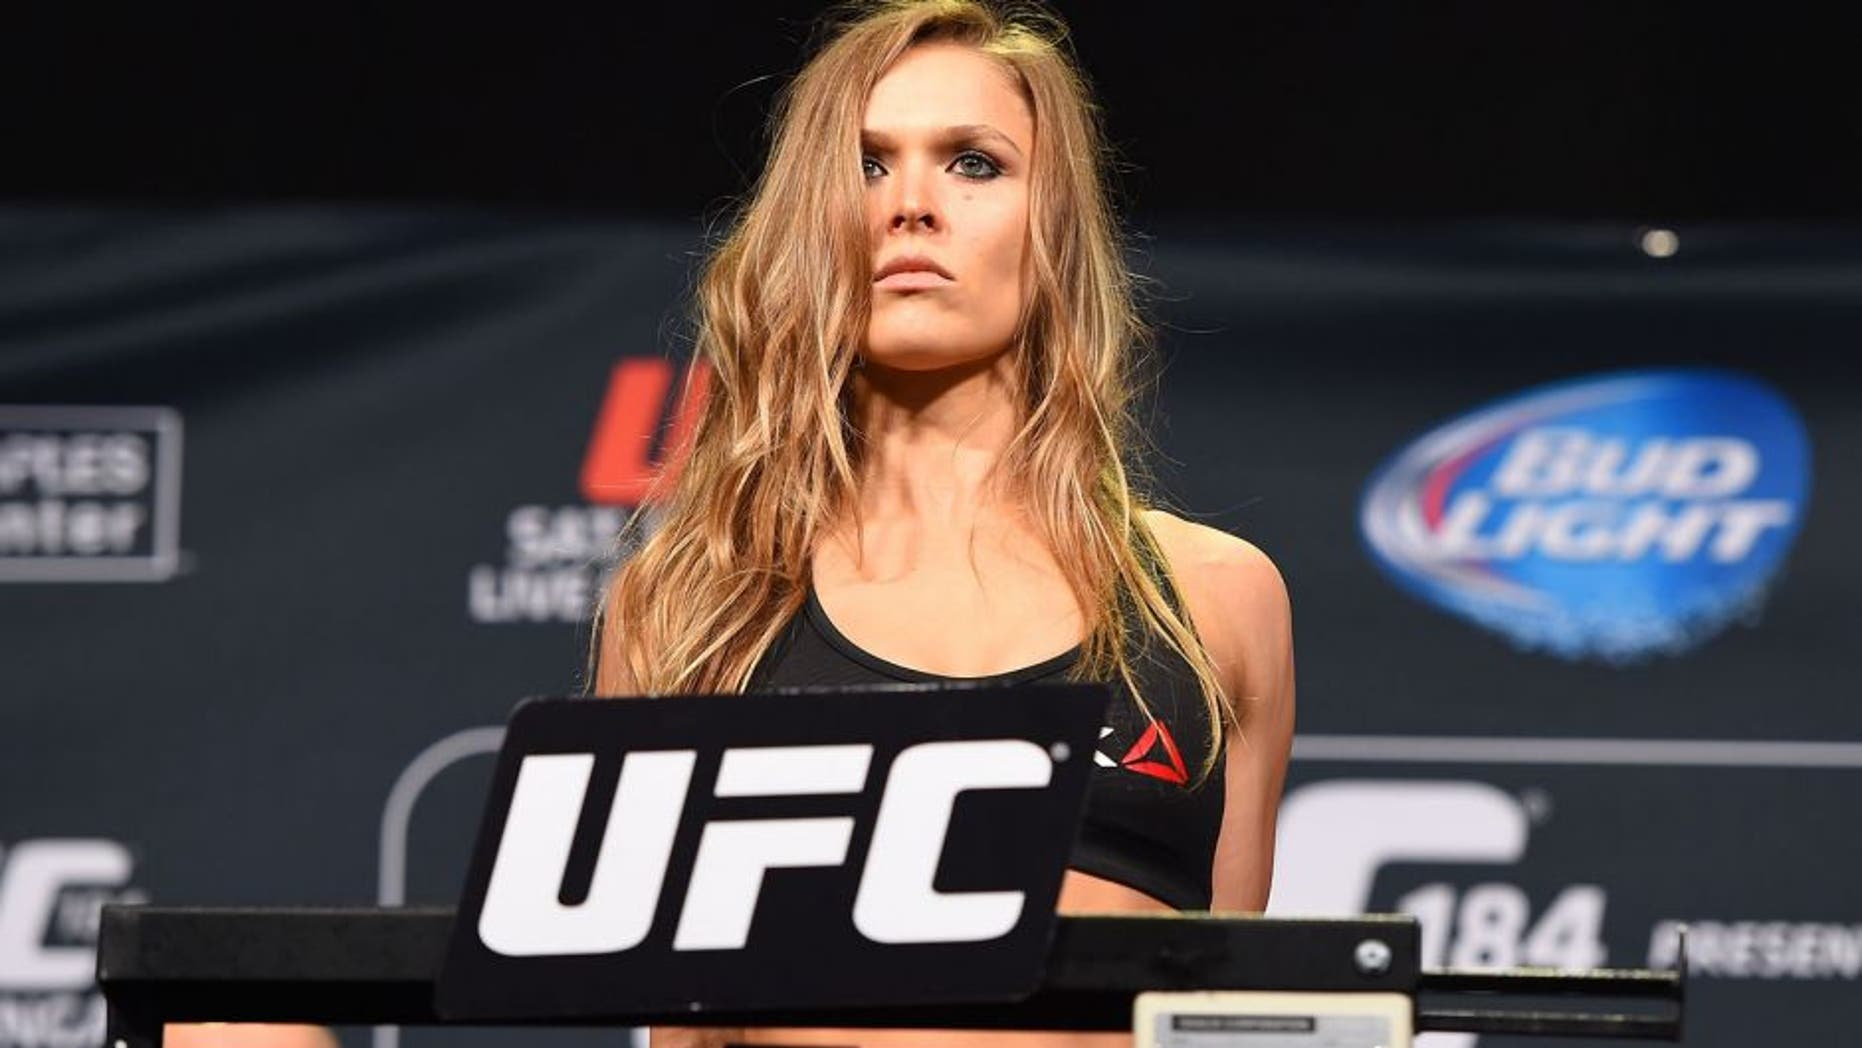 LOS ANGELES, CA - FEBRUARY 27: Ronda Rousey weighs in during the UFC 184 weigh-in at the Event Deck and LA Live on February 27, 2015 in Los Angeles, California. (Photo by Josh Hedges/Zuffa LLC/Zuffa LLC via Getty Images)